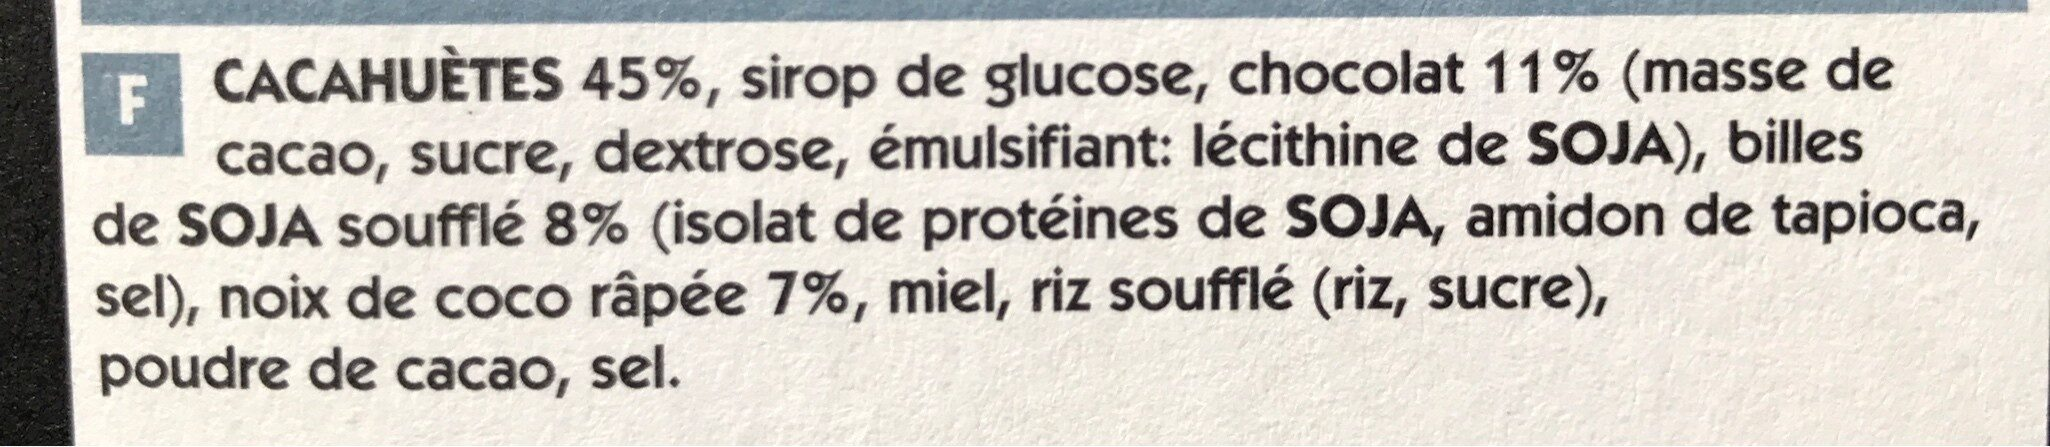 Crunchy nut bar protein packed - Ingredients